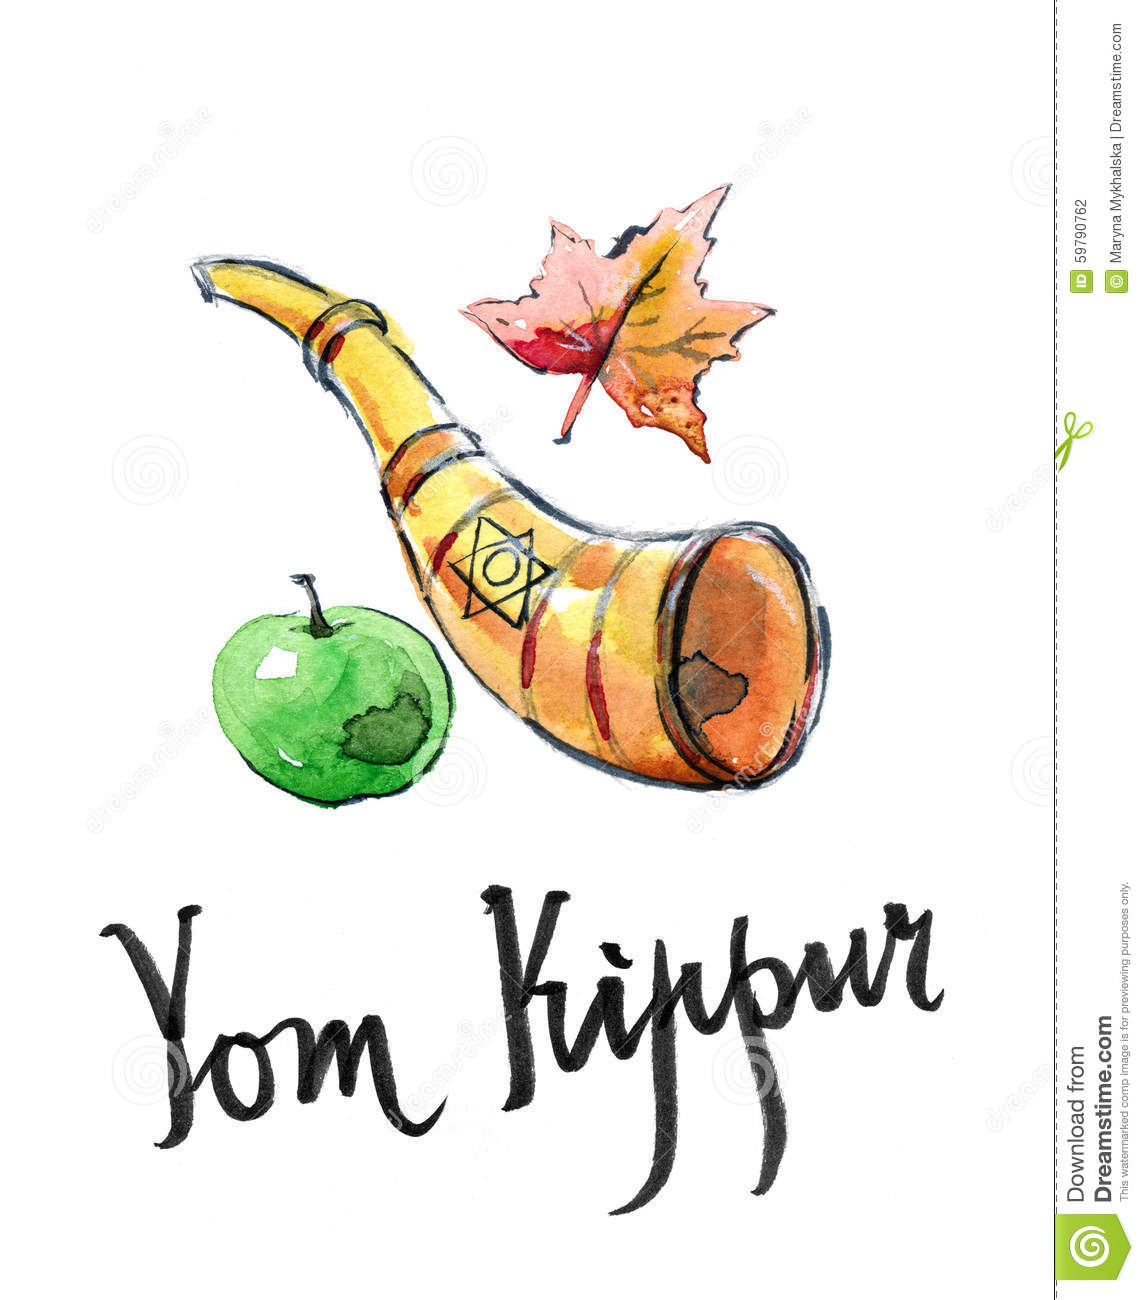 Yom Kippur, Jewish Holiday Stock Vector - Image: 59790762